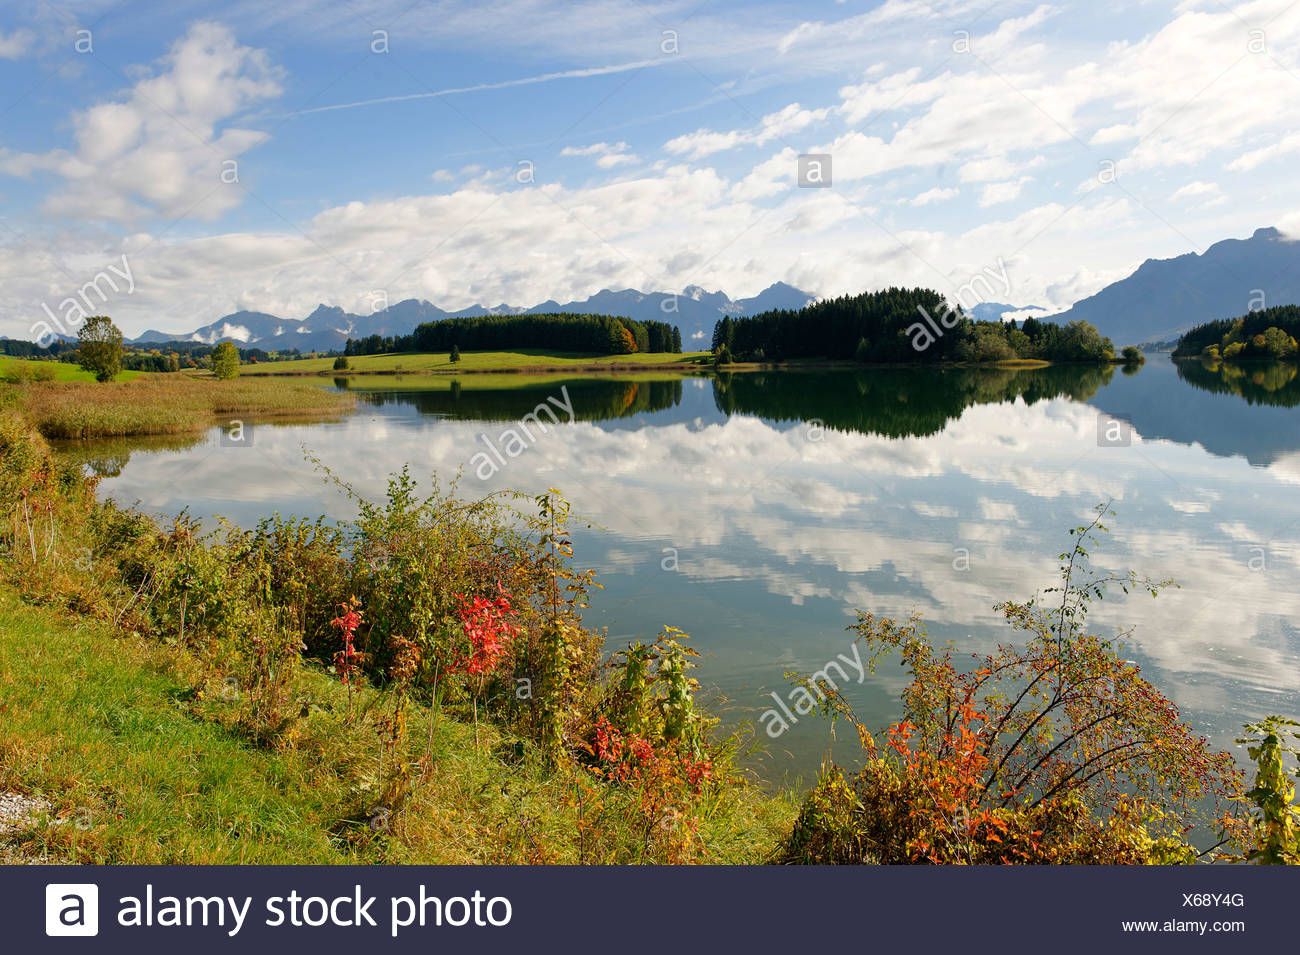 Forggensee lake in front of the Saeuling mountain, 2047 m, and the mountains of Thannheim, Bavarian Swabia, Bavaria, Germany Eu Stock Photo